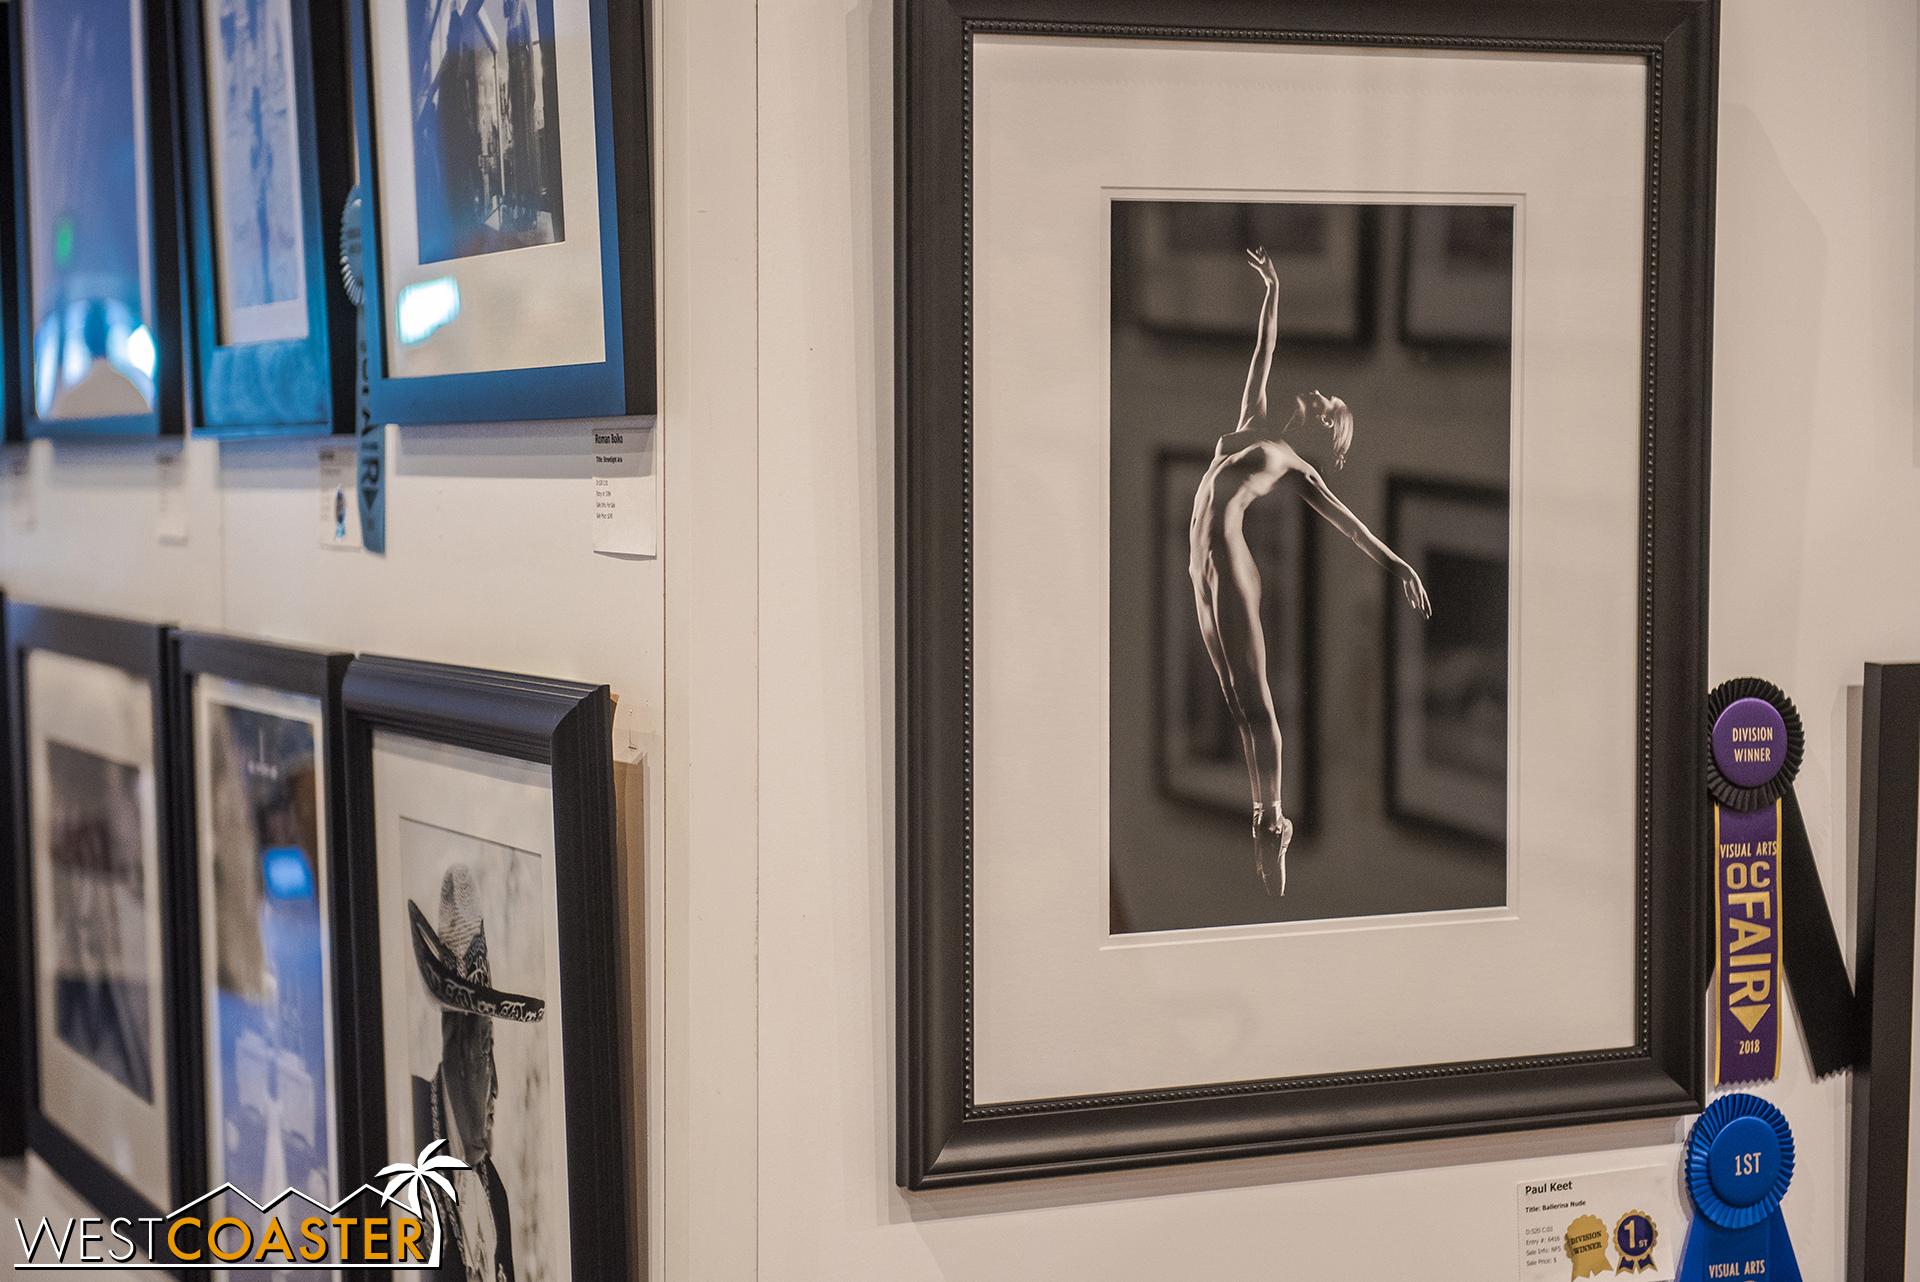 It's rare to see nudes on display, but this photo was award winning (and compositionally pretty amazing), so it made it through the filters.